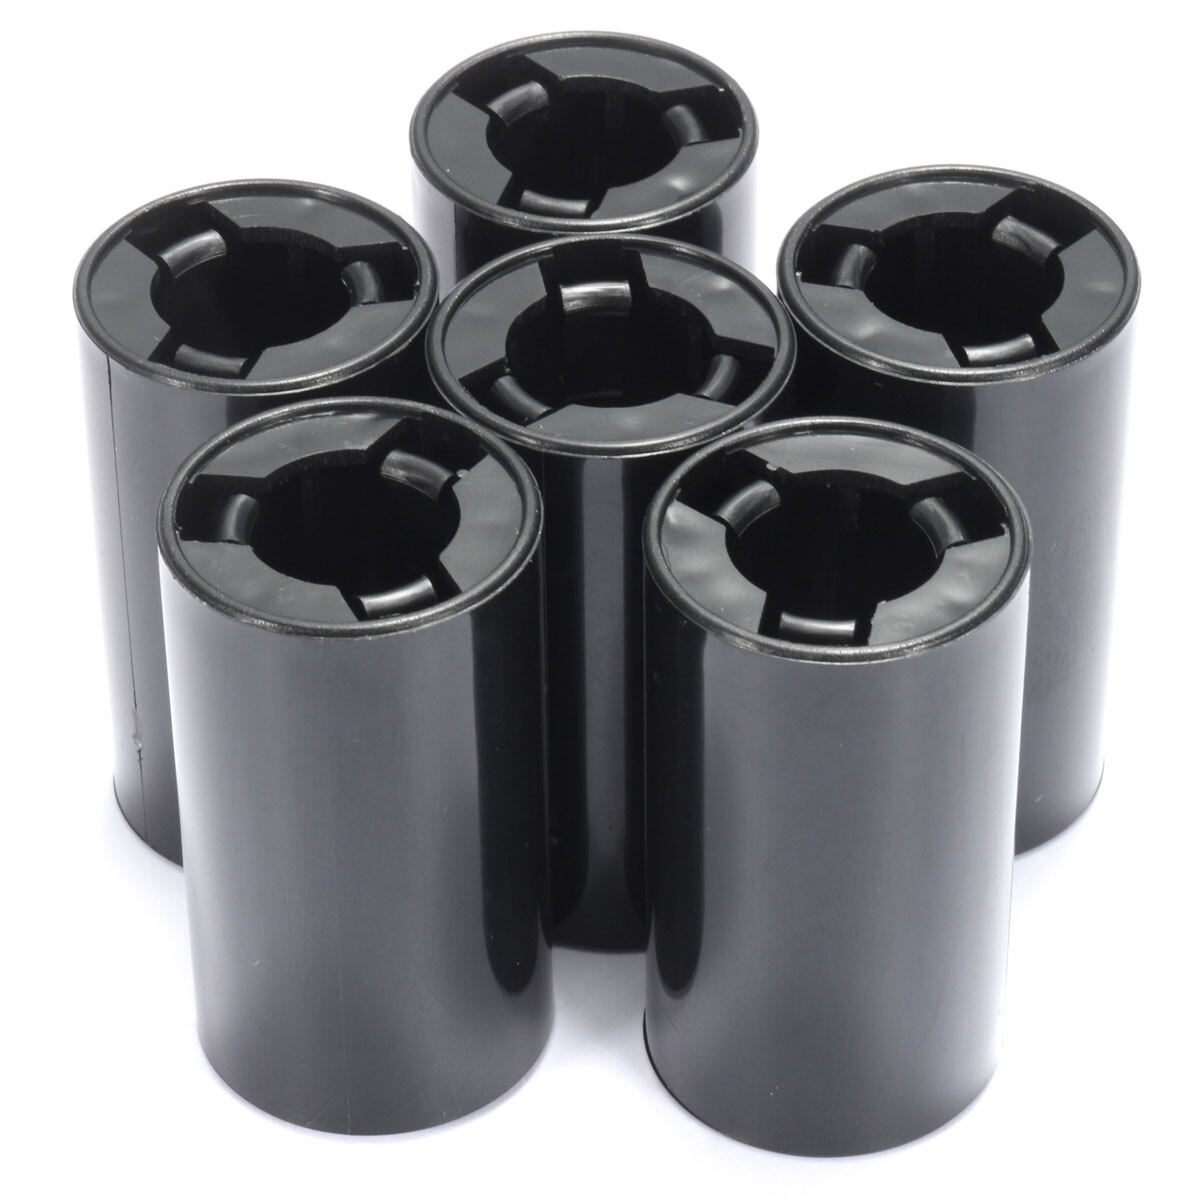 6pcs AA to C Size Battery Converter Adapter Case Holder Plastic Case Tube New